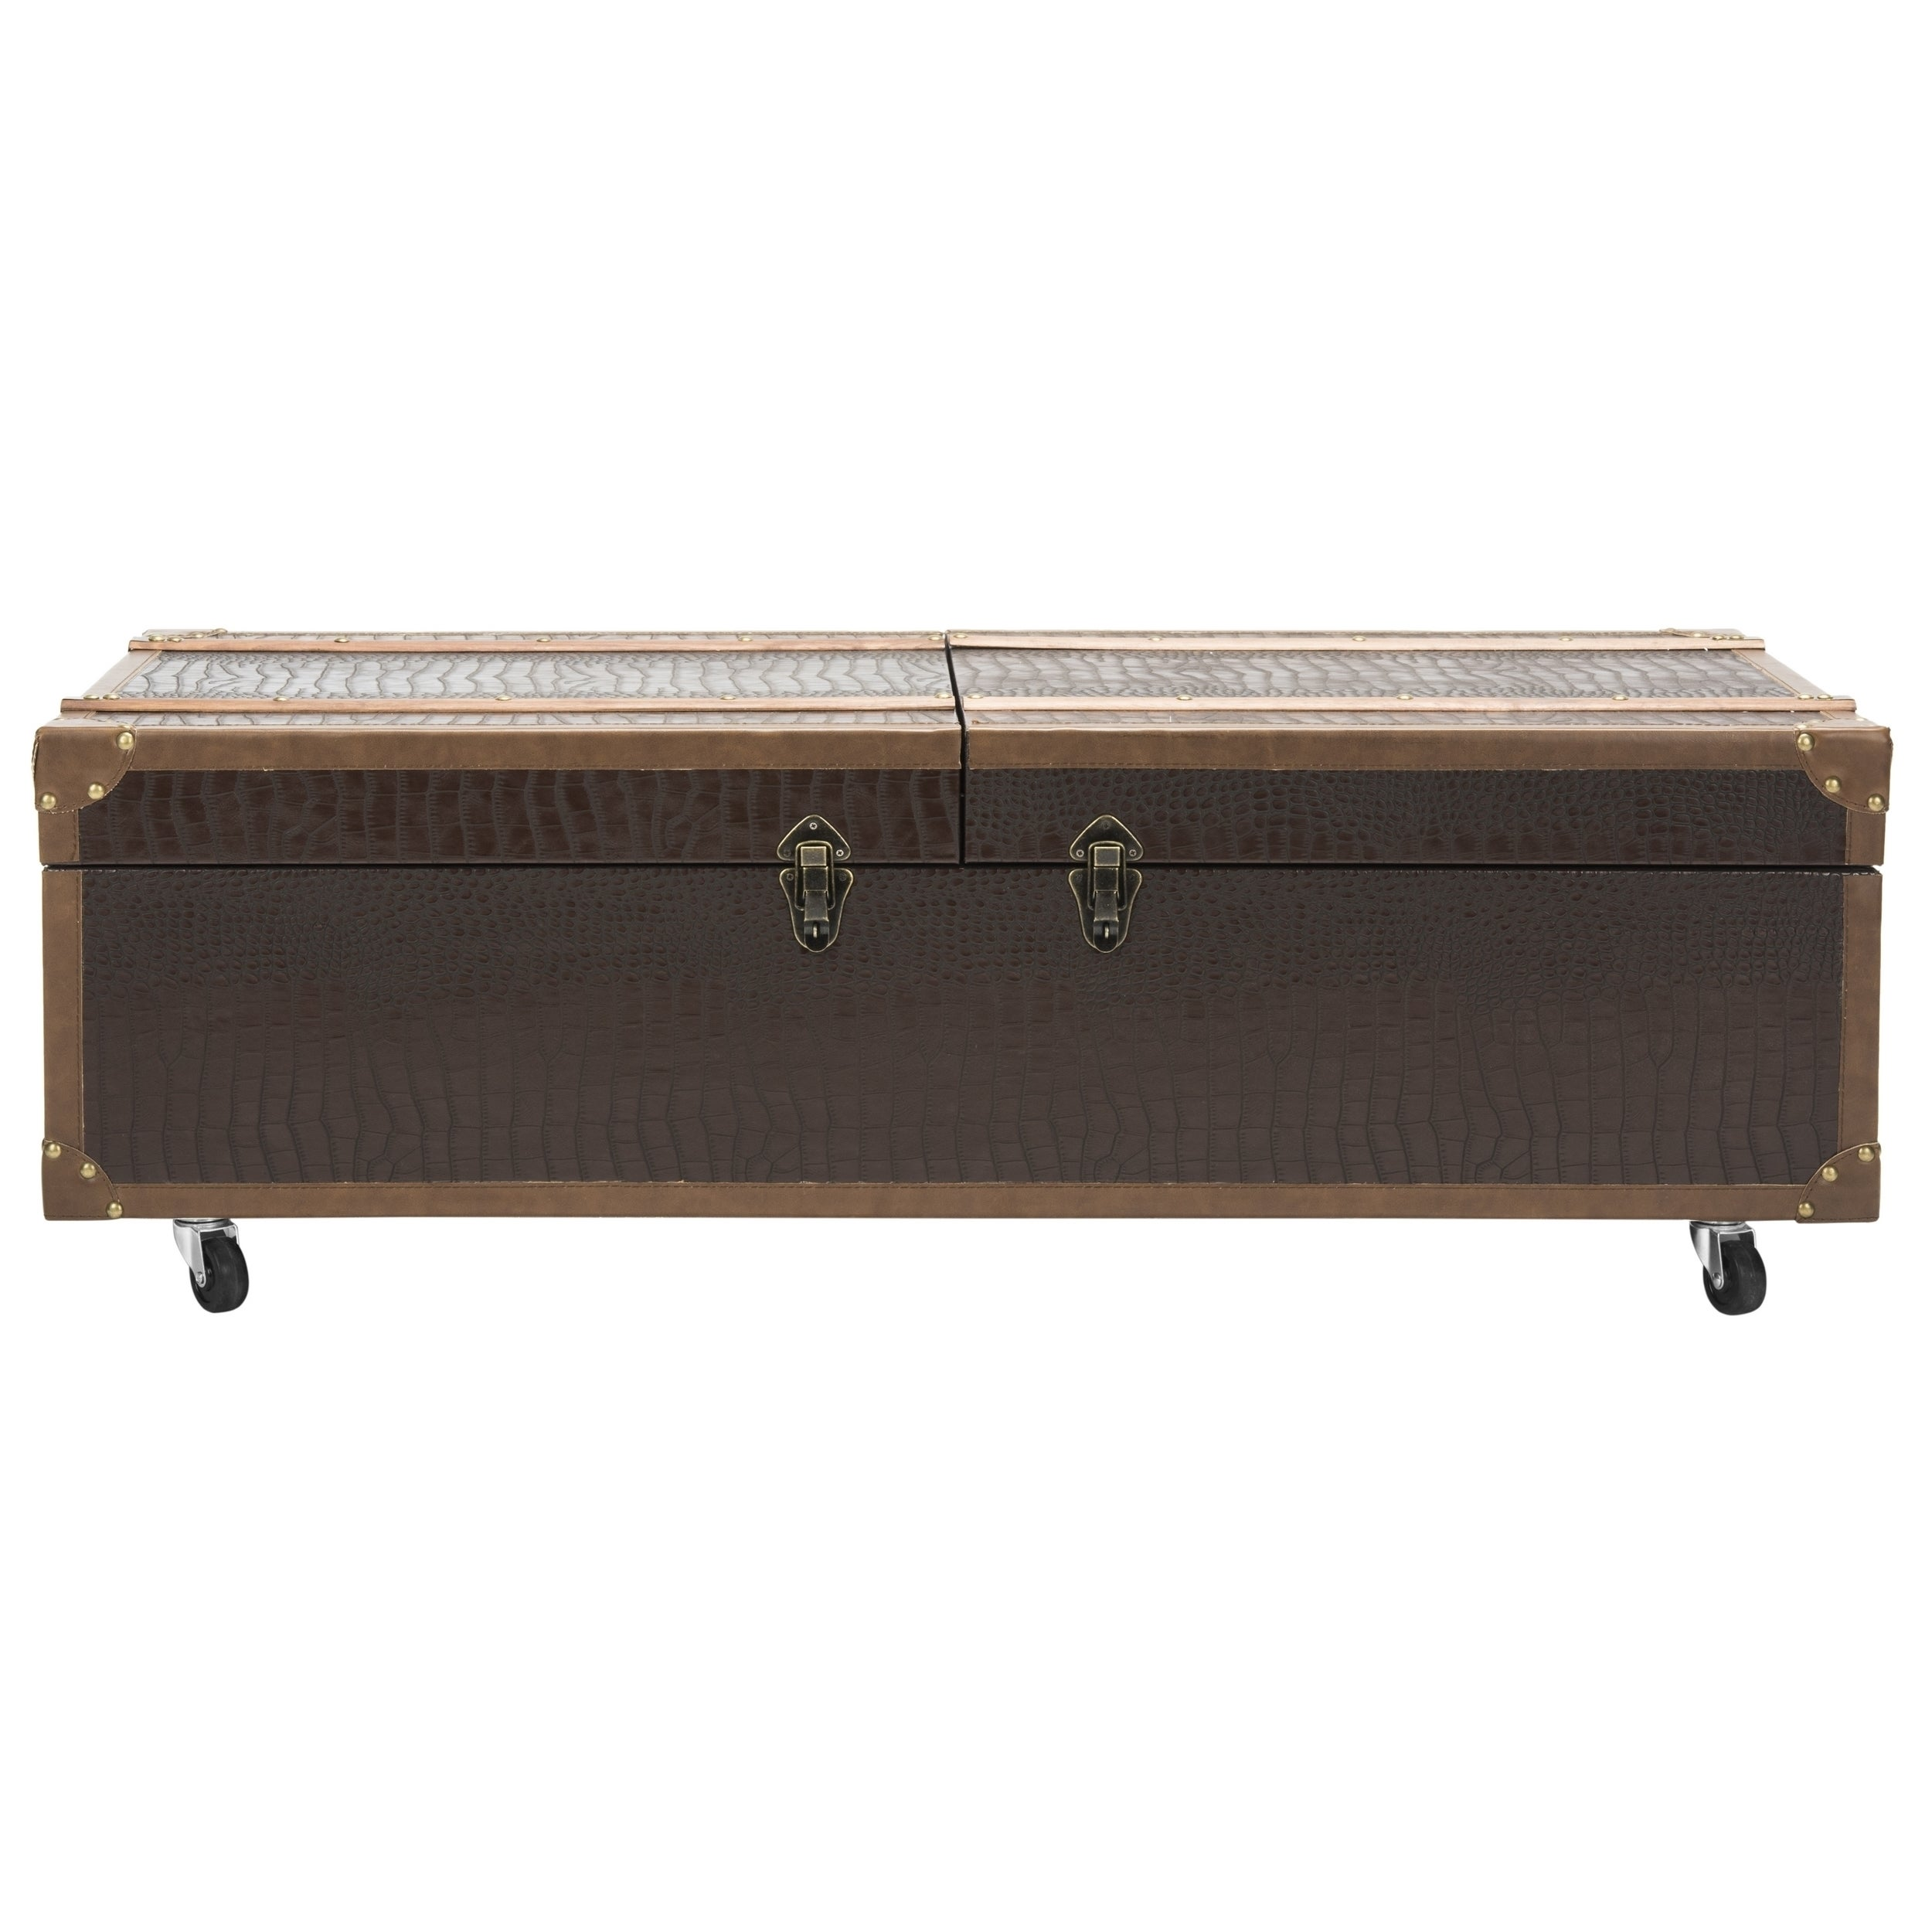 Shop Safavieh Zoe Coffee Table Storage Trunk With Wine Rack   Free Shipping  Today   Overstock.com   14585165